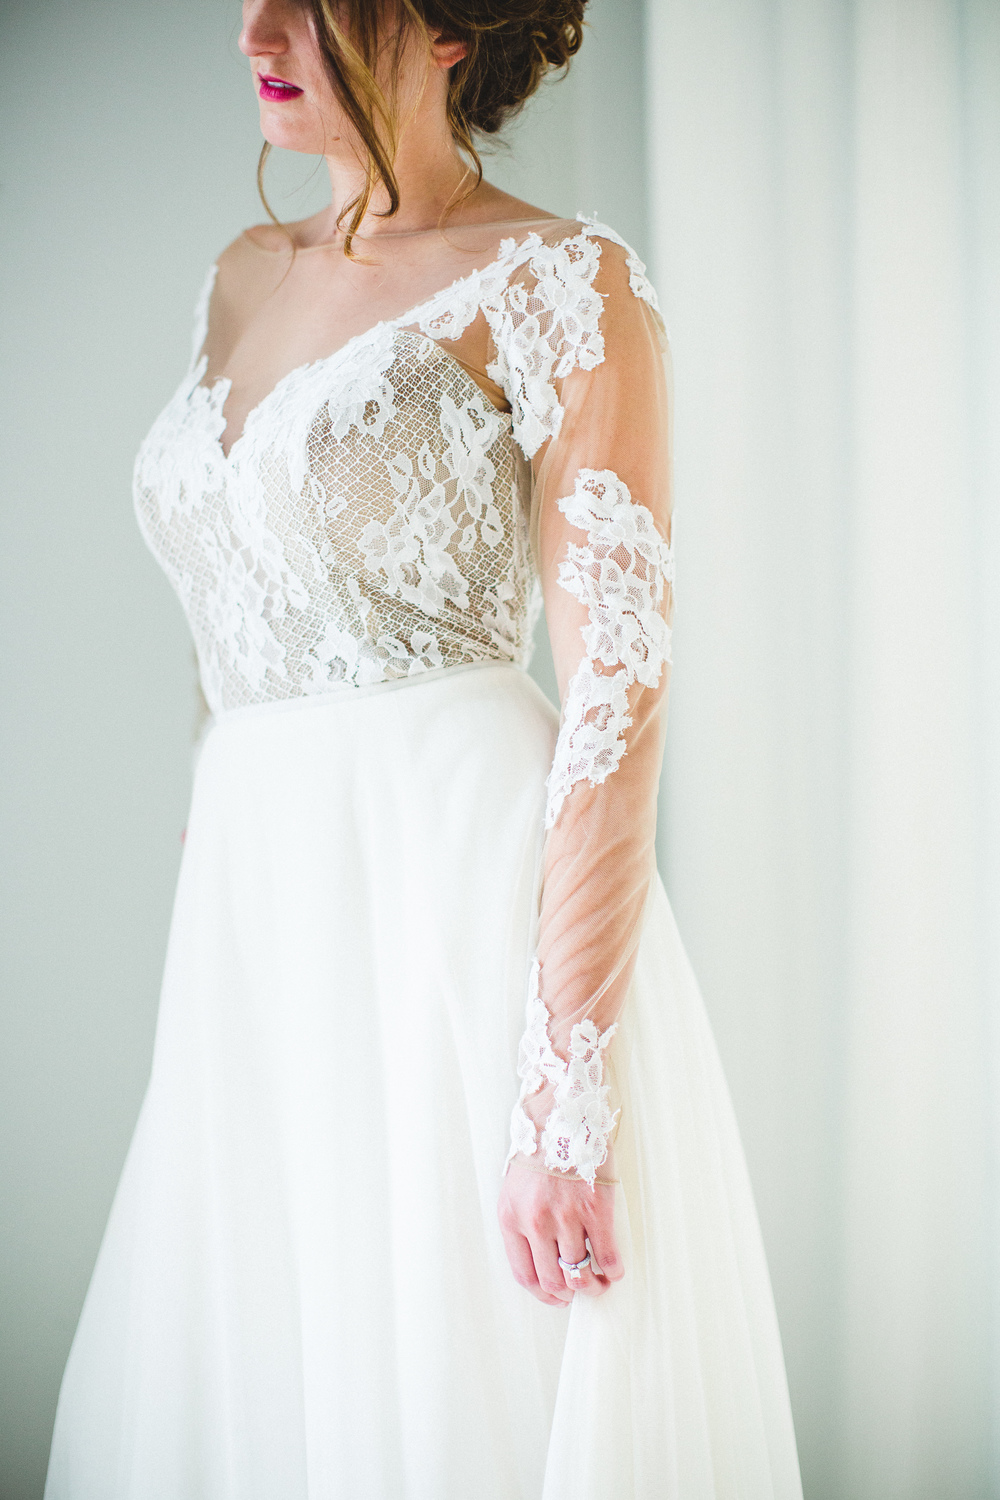 ginger-blush-by-hayley-paige-ivory-and-beau-savannah-bridal-boutique-savannah-wedding-dresses-long-sleeved-wedding-dress-hayley-paige-cheap-wedding-dresses-sample-sale-savannah-georgia-bridal-shop-bridal-gowns-cheap.jpg